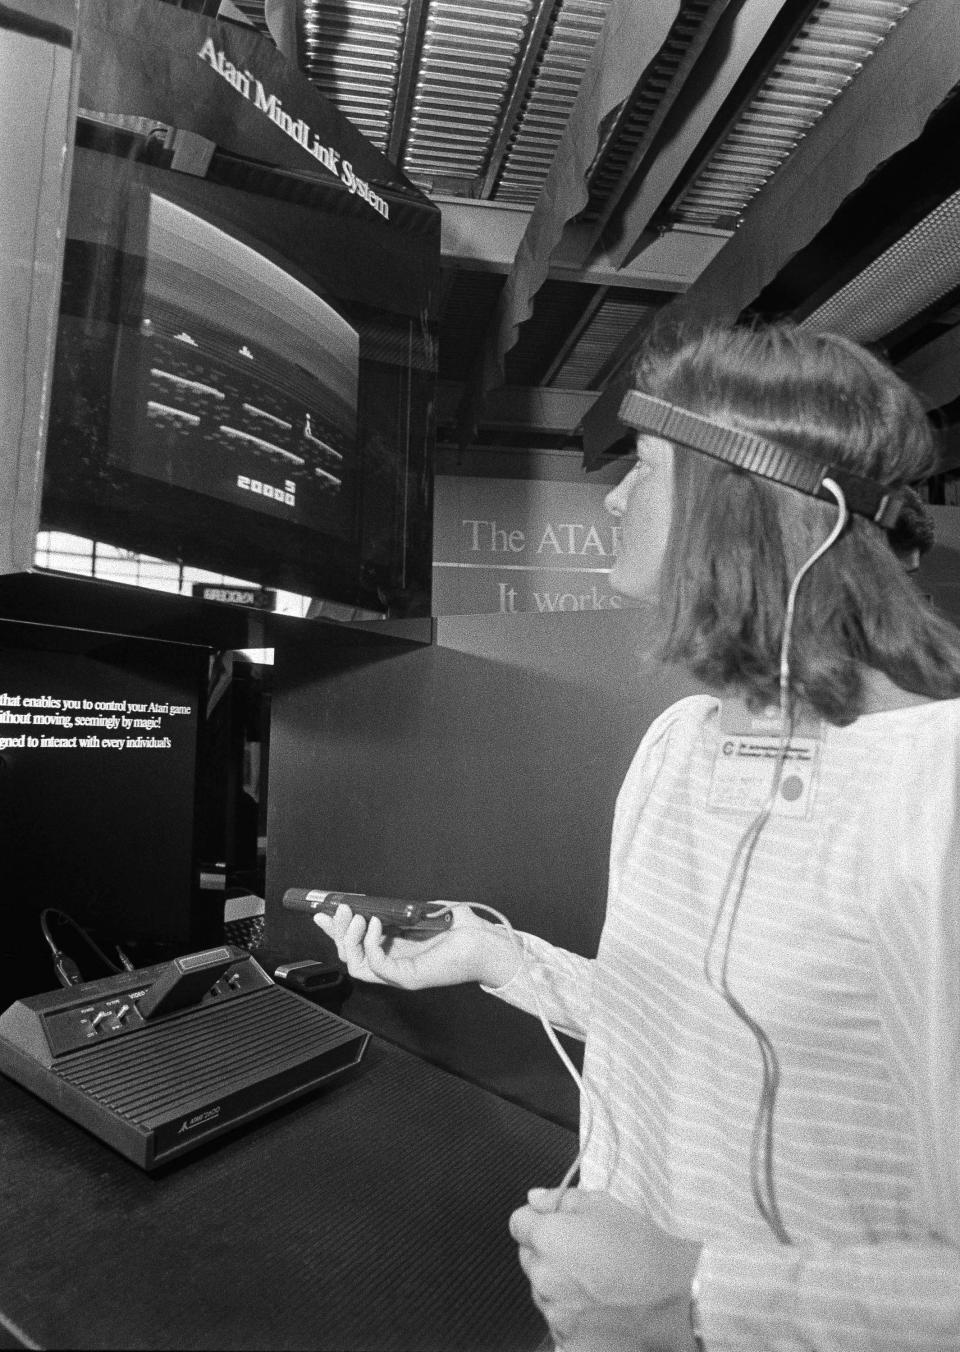 FILE- In this June 5, 1984, file photo, a woman in Chicago demonstrates Atari's new game, Mind Link, which utilizes a headband that picks up electrical impulse from the movement of the forehead and transmits them to a receiver attached to a video game or home computer console. (AP Photo/Charlie Knoblock)